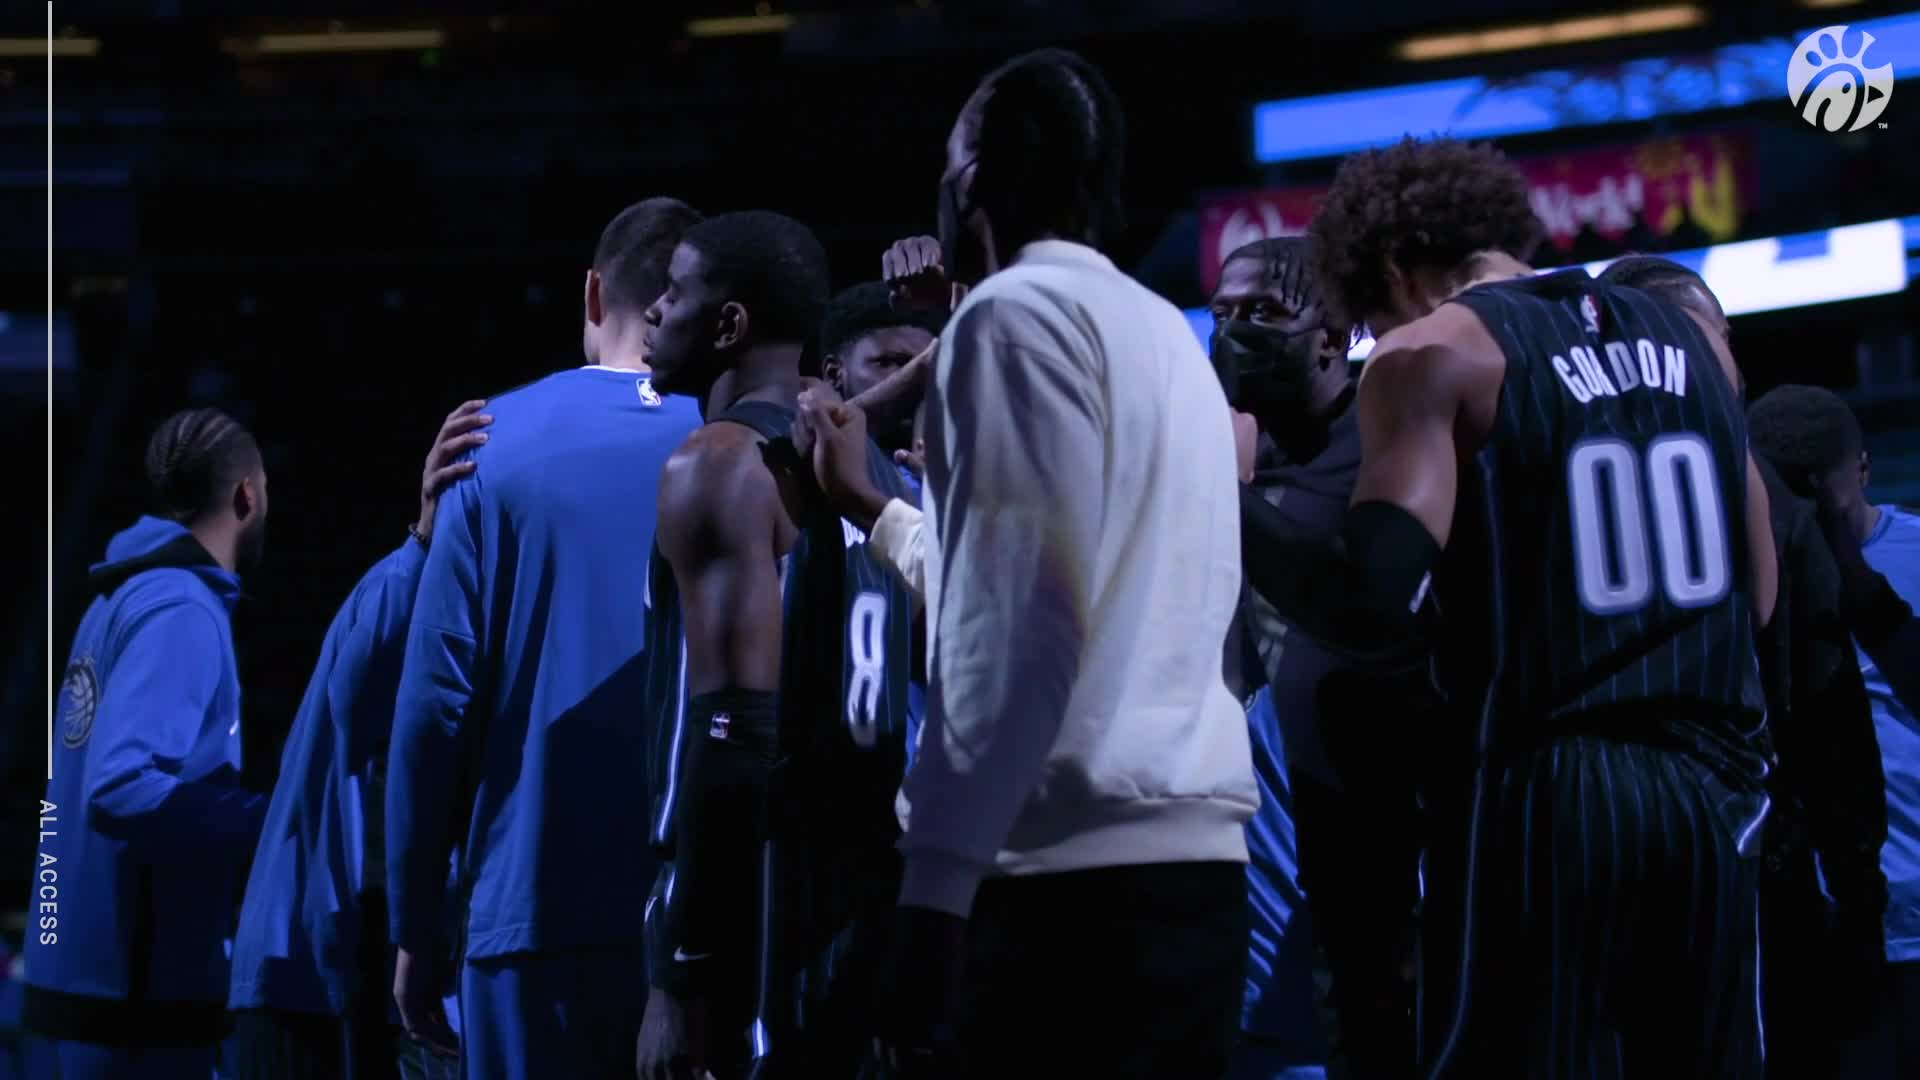 Orlando Magic All Access: Episode 3 | Presented by Chick-fil-A